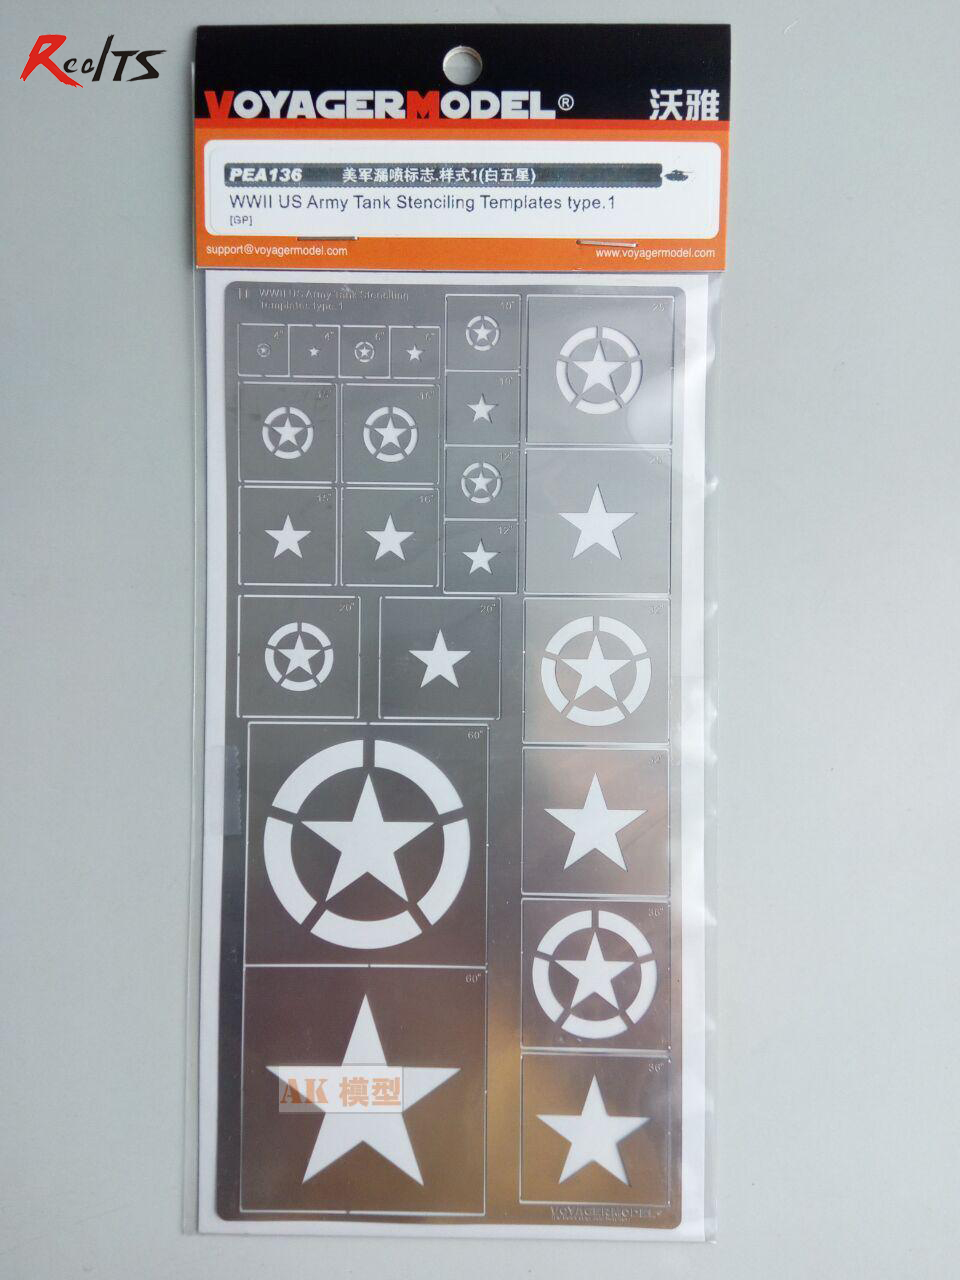 RealTS Voyager 1:35 WWII US Army Tank Stenciling Templates Type 1 PEA136